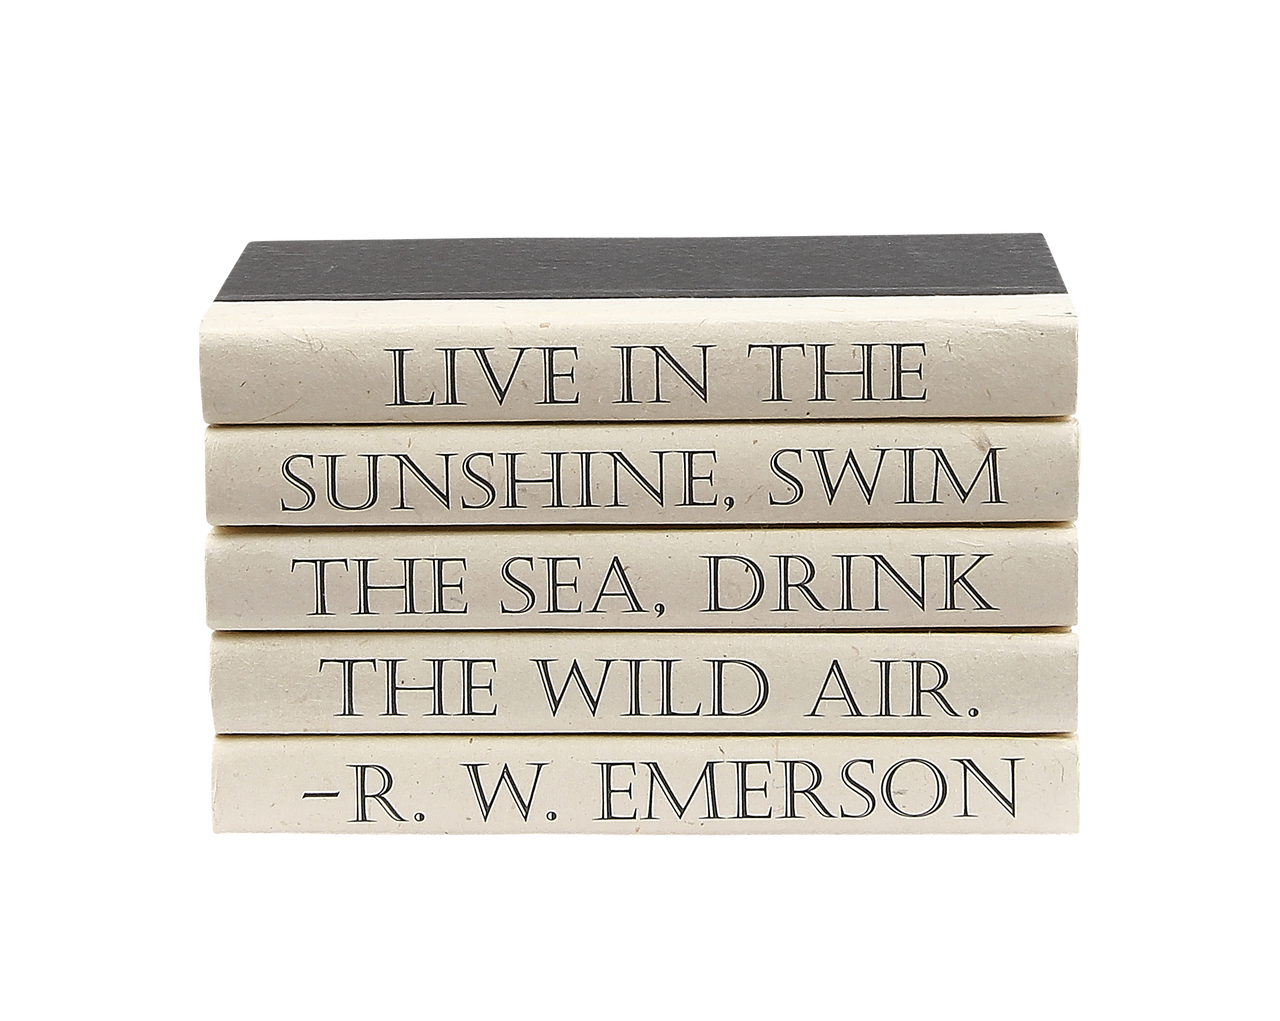 5 Vol R W Emerson Live In The Sunshine Black Covers 9 5 Wide Approx 6 25 Tall E Lawrence Ltd